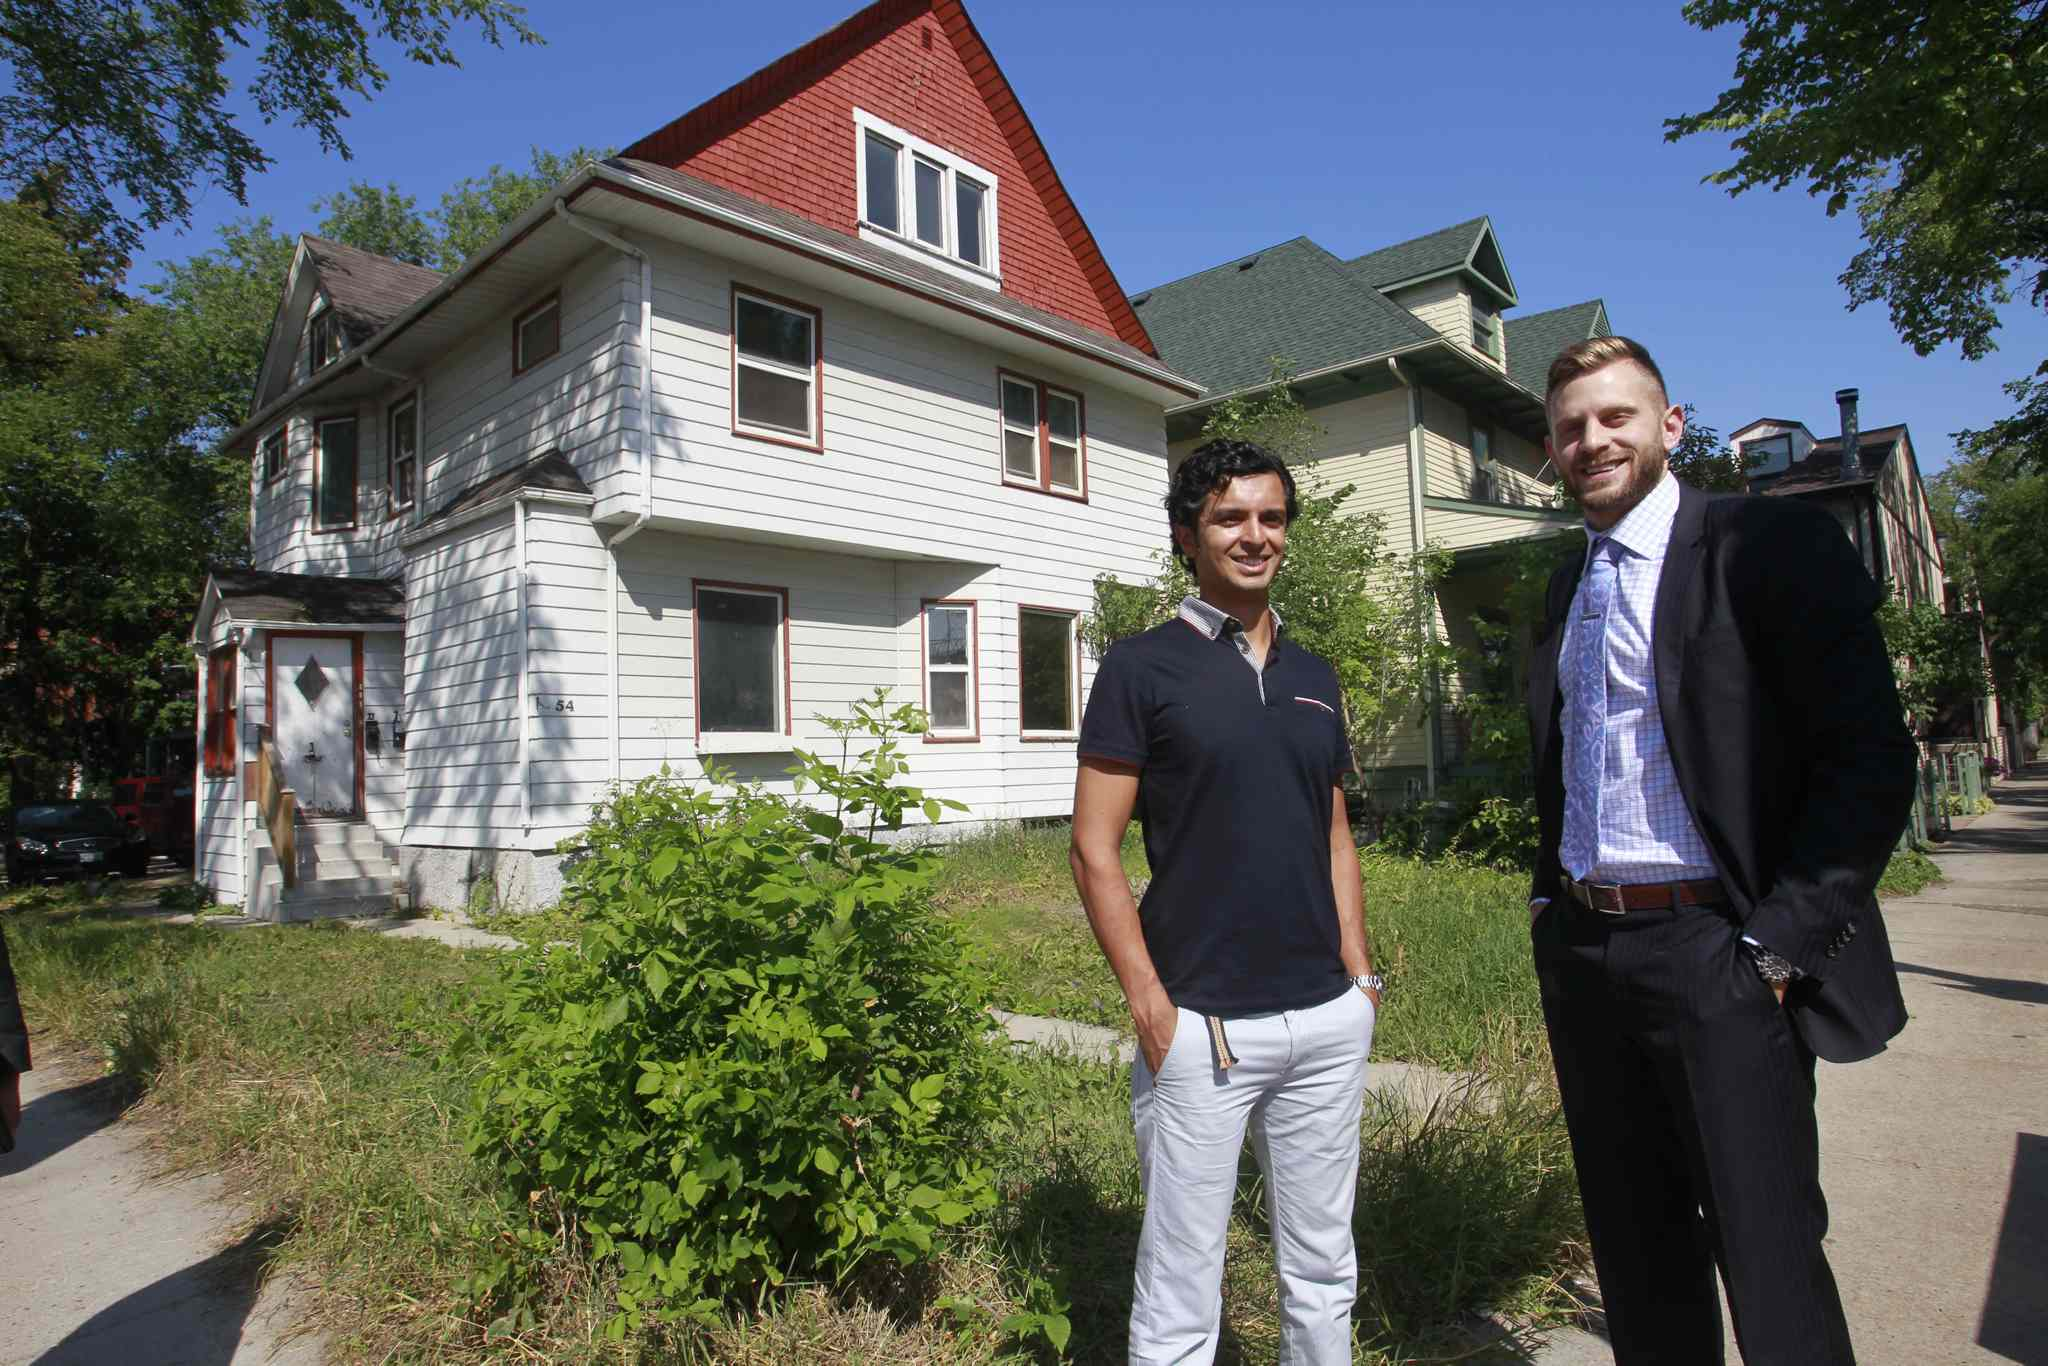 Martin Riazuddin (left) and Jon Blumberg in front of 54 Maryland St. A new condo/commercial development is planned for the site.